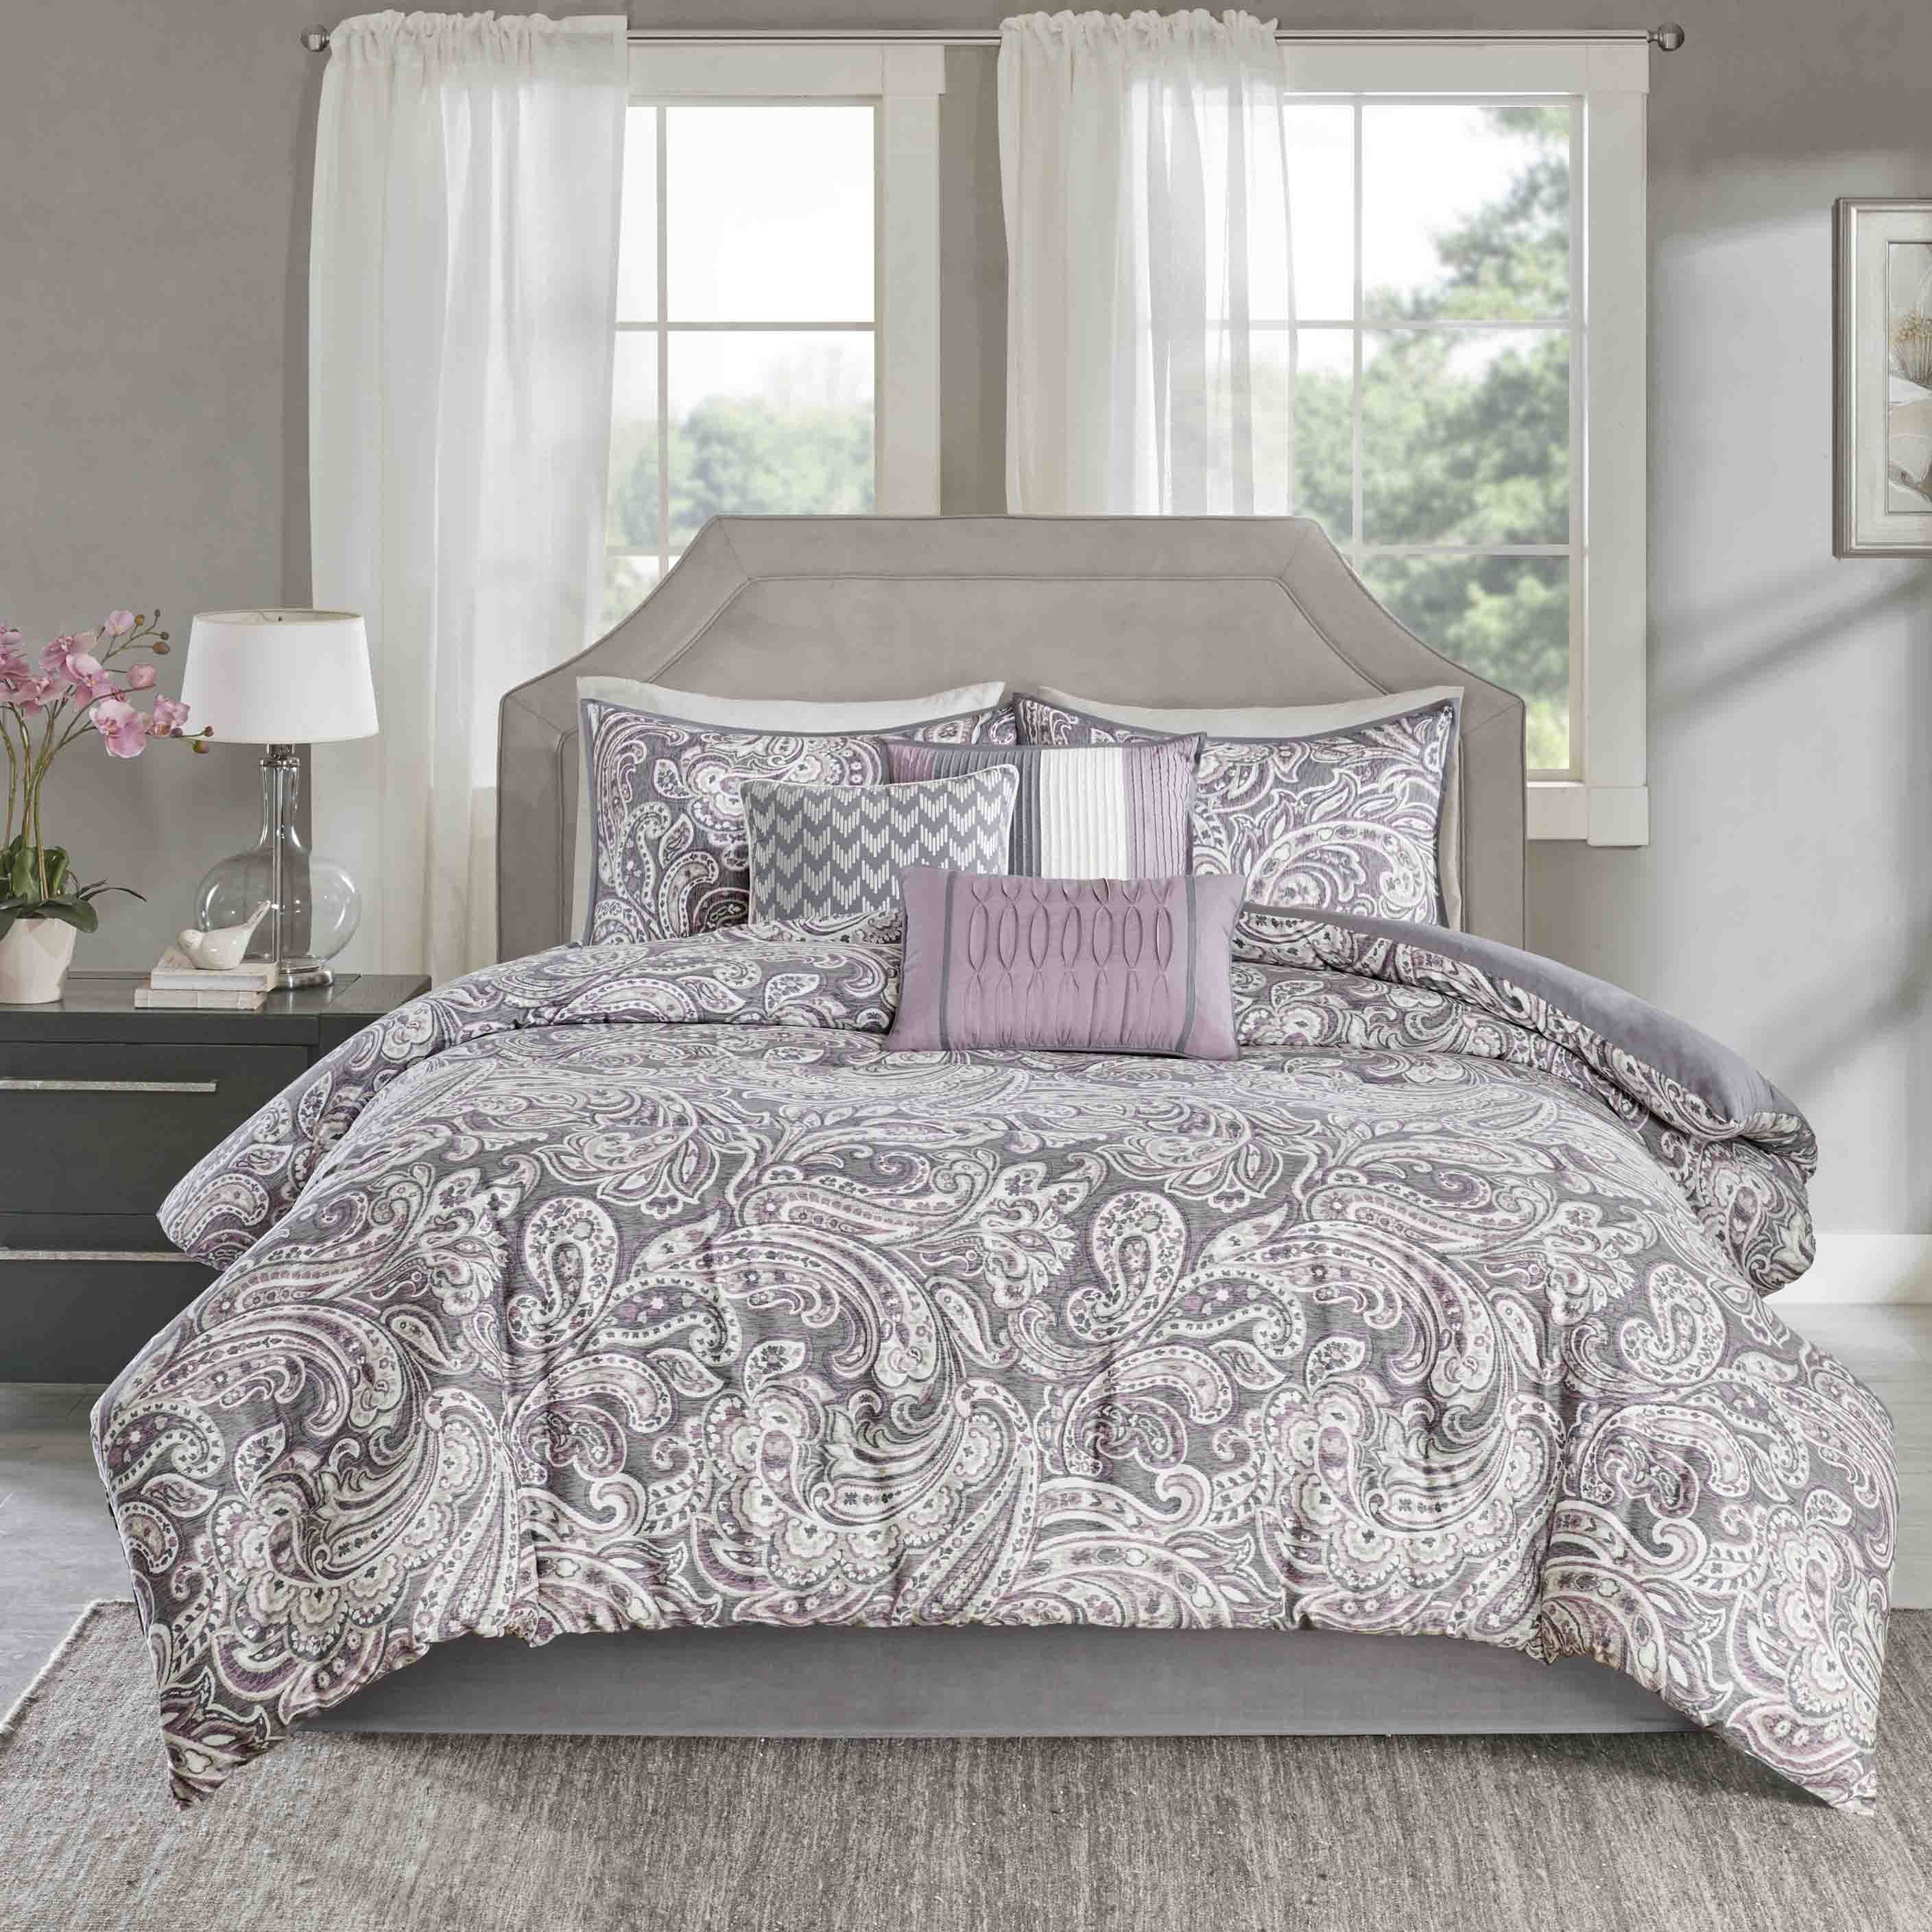 blue full paisley shop white green cover care set easy on duvet lora polyester lavendar kids pink piece envogue floral queen buy